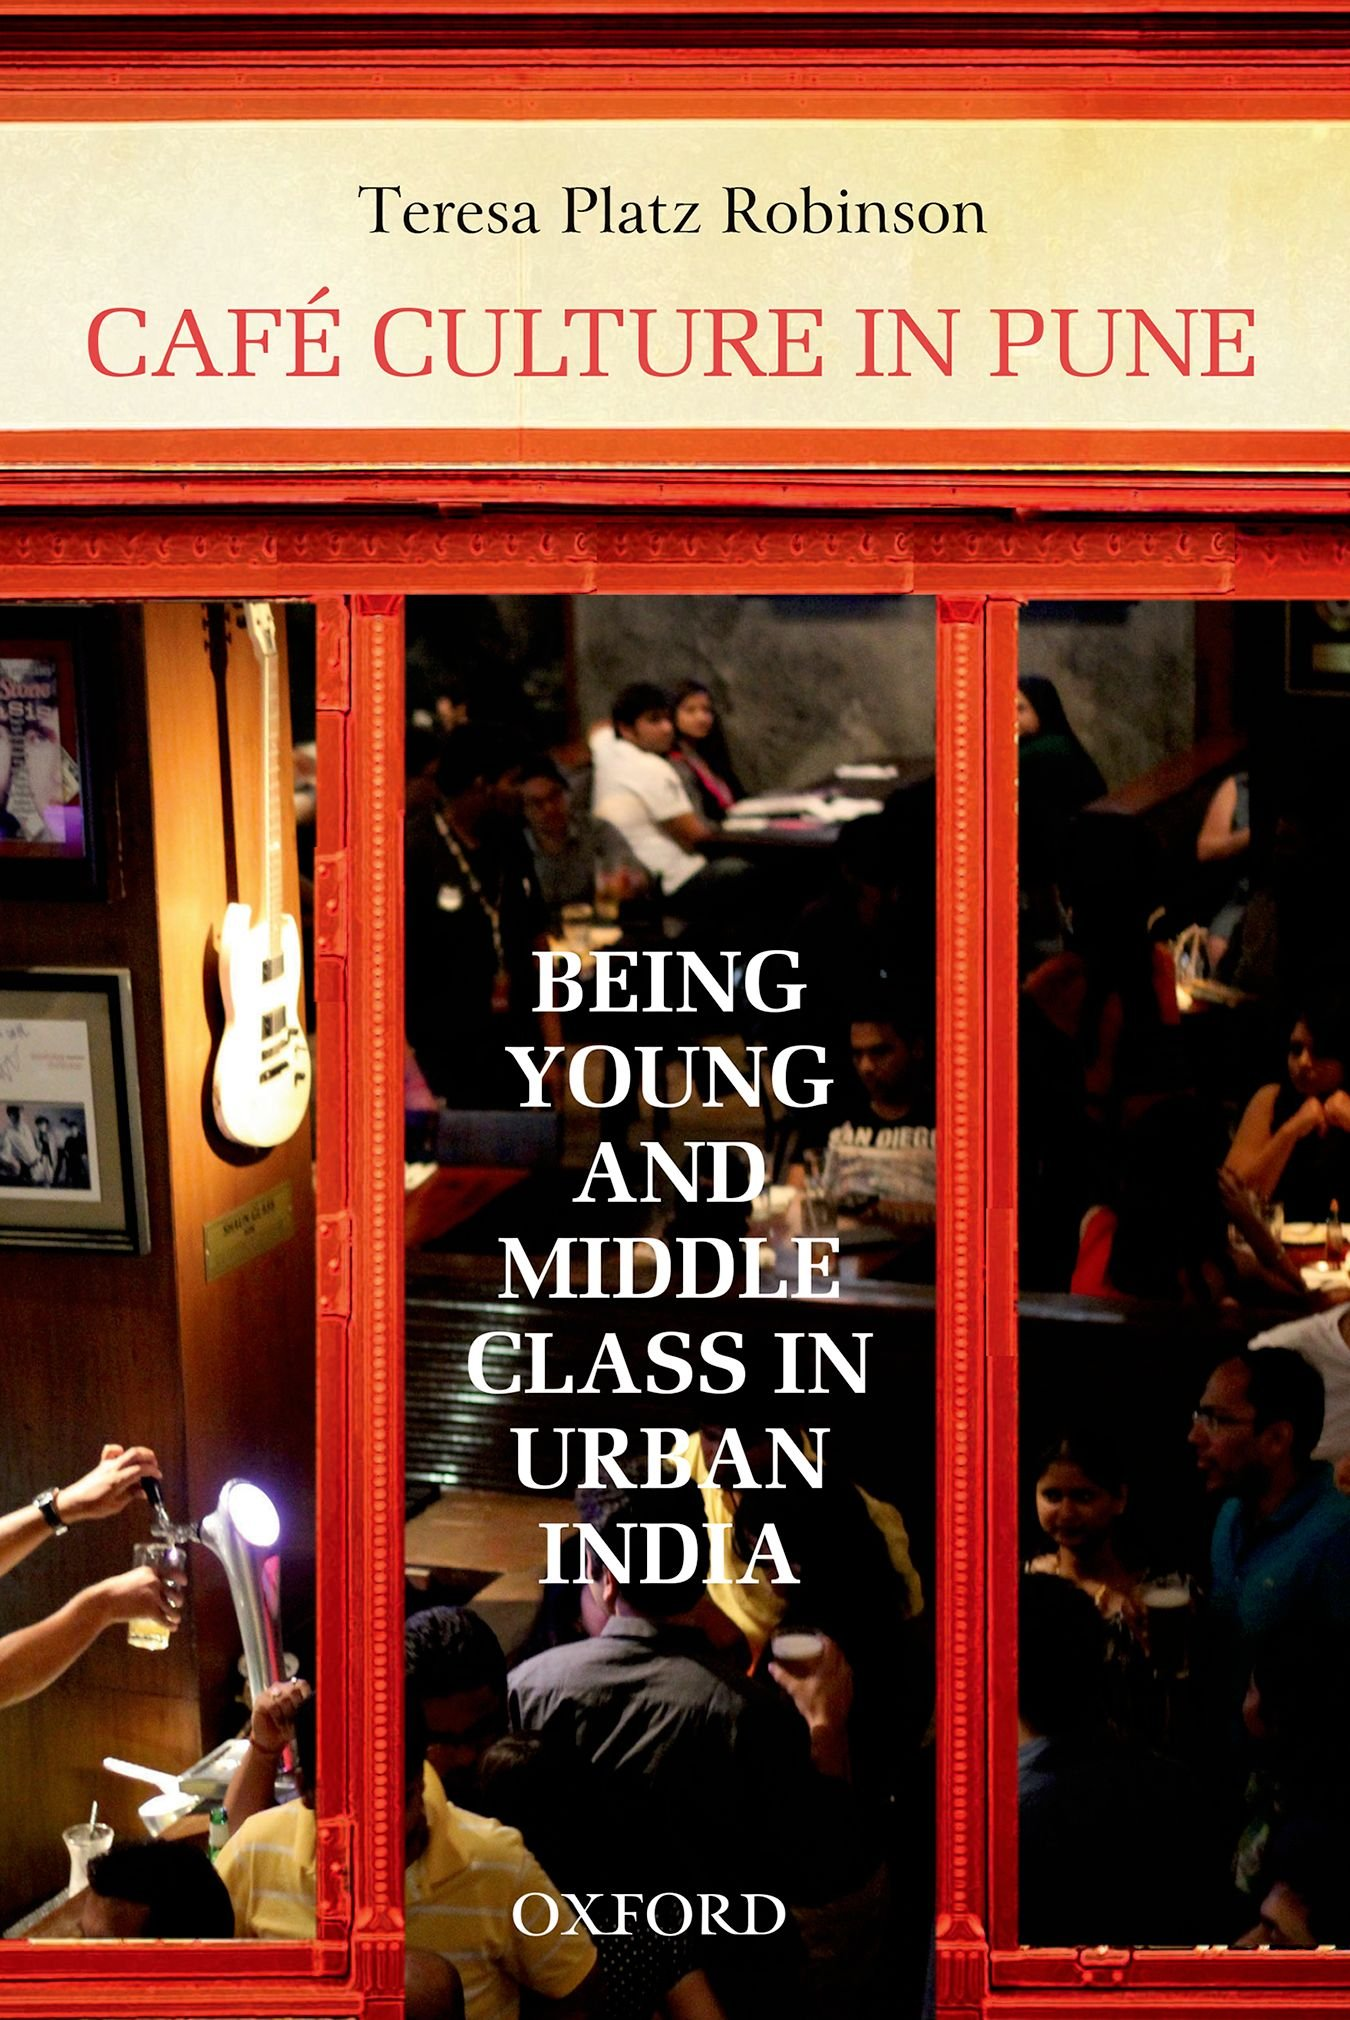 Cafe Culture In Pune: Being Young And Middle Class In Urban India